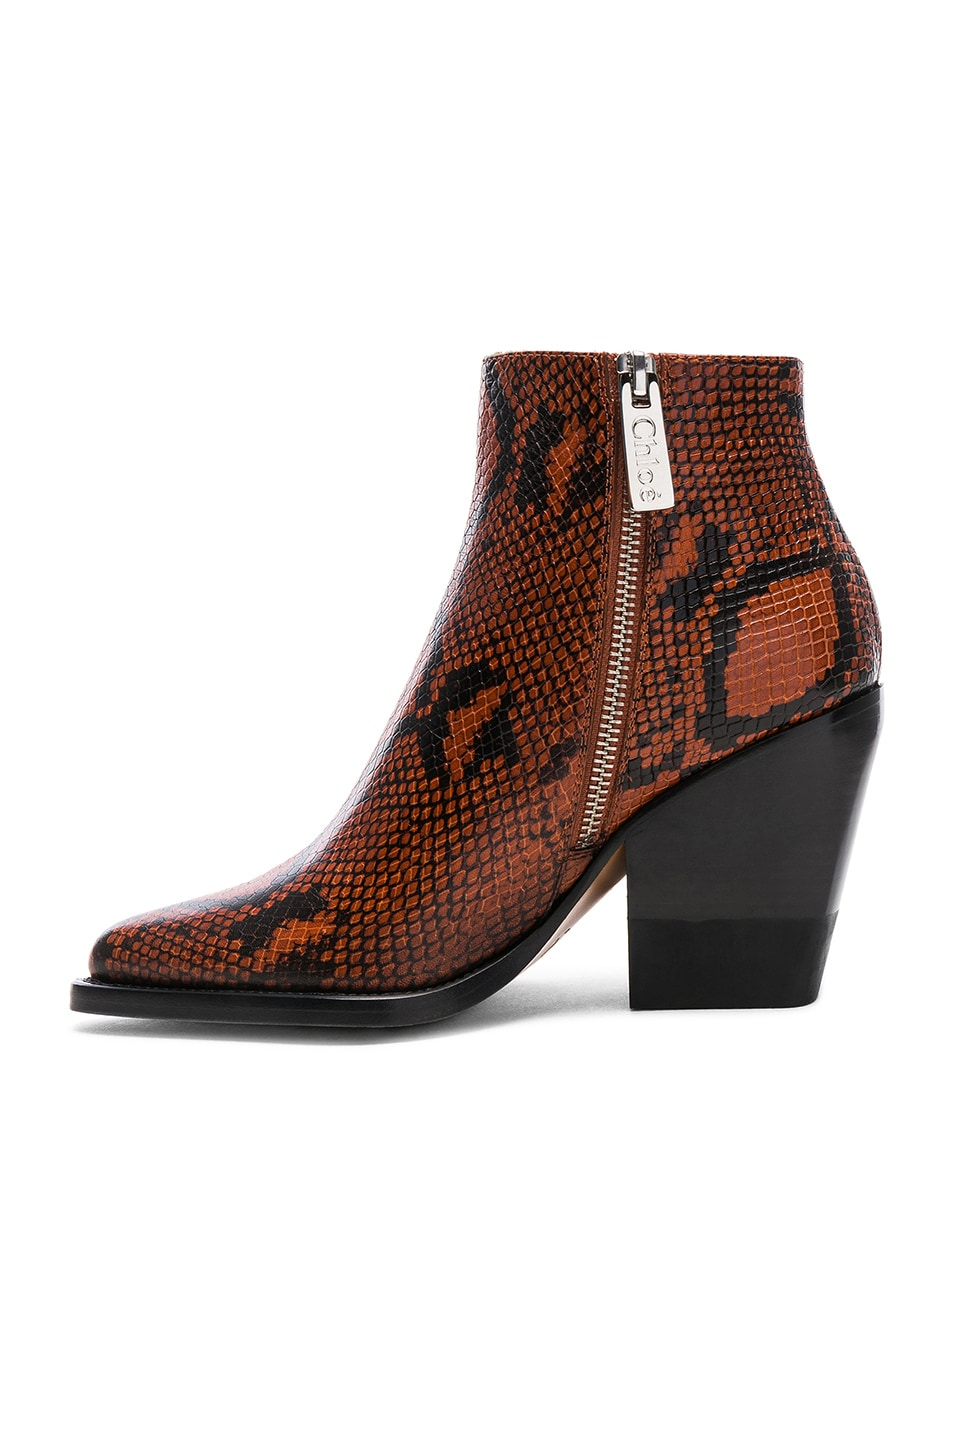 Image 5 of Chloe Python Rylee Print Leather Ankle Boots in Brown